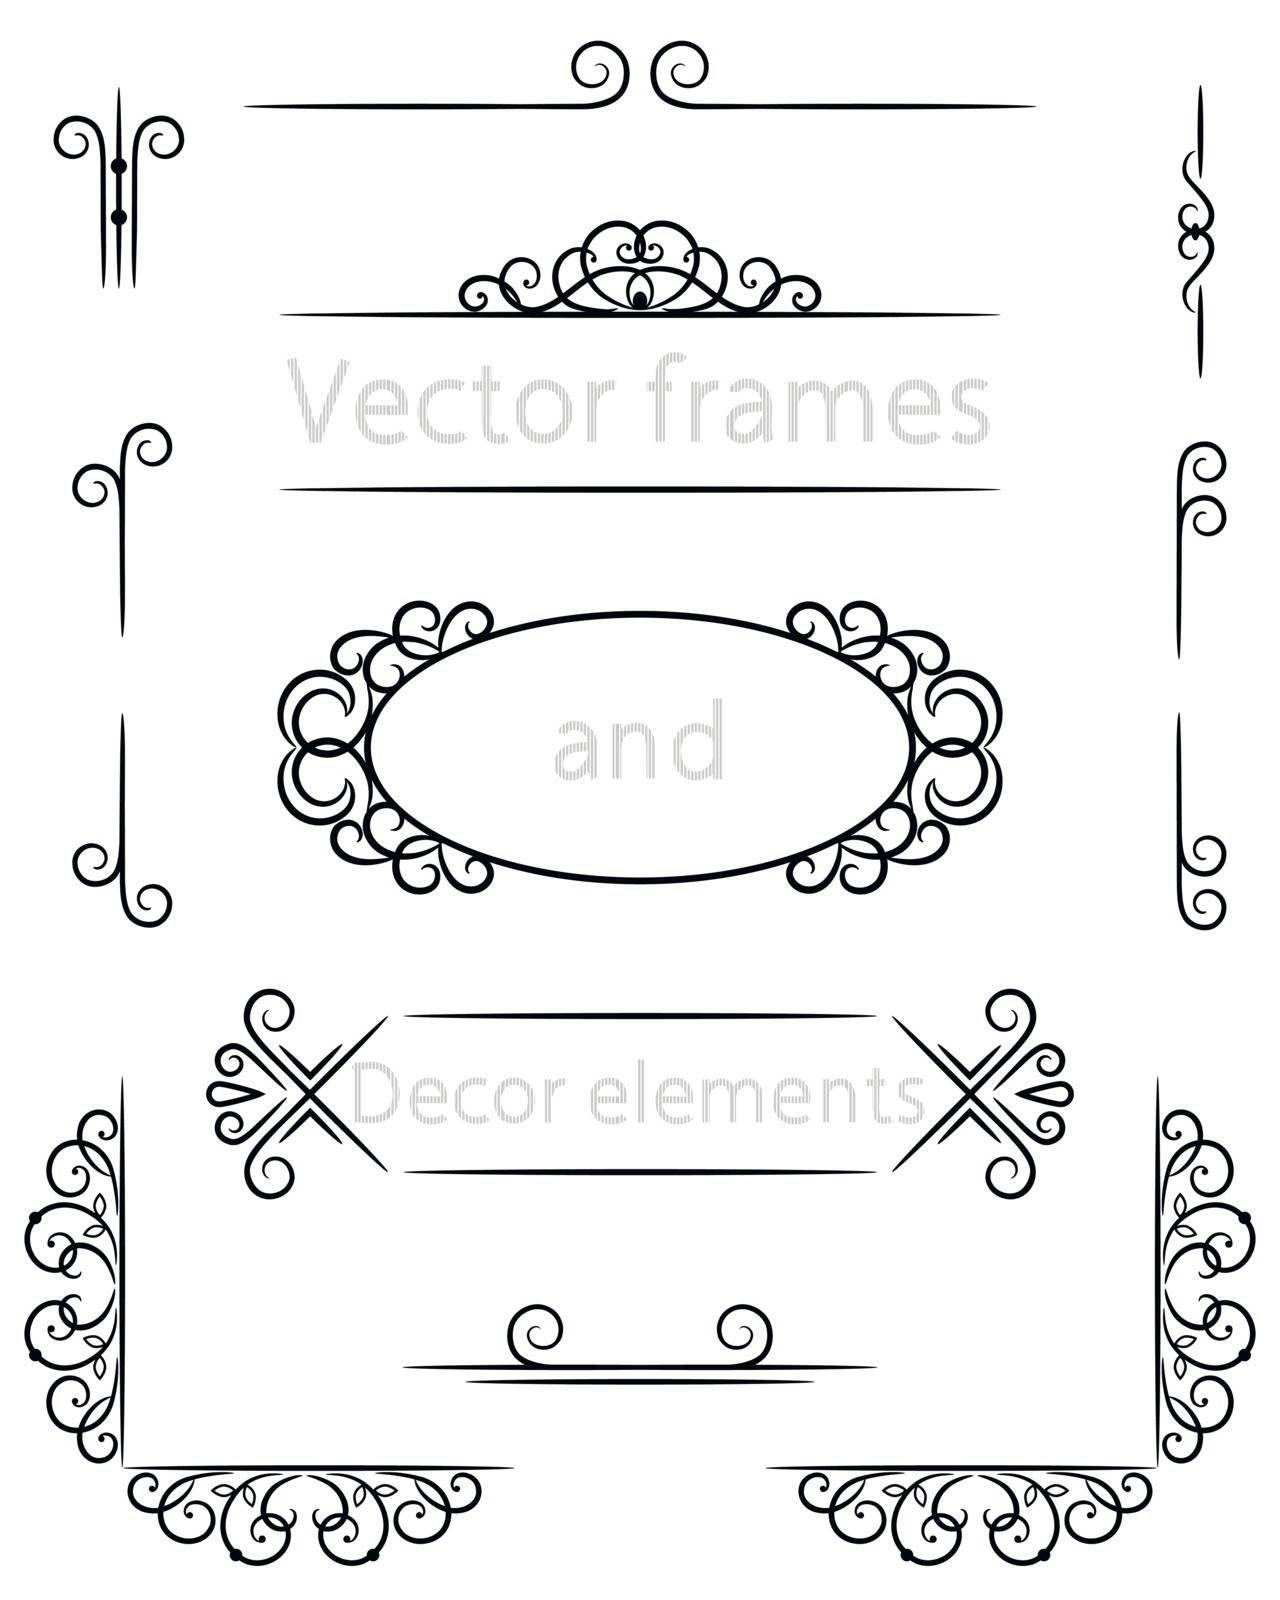 vector frame and decor elements for text